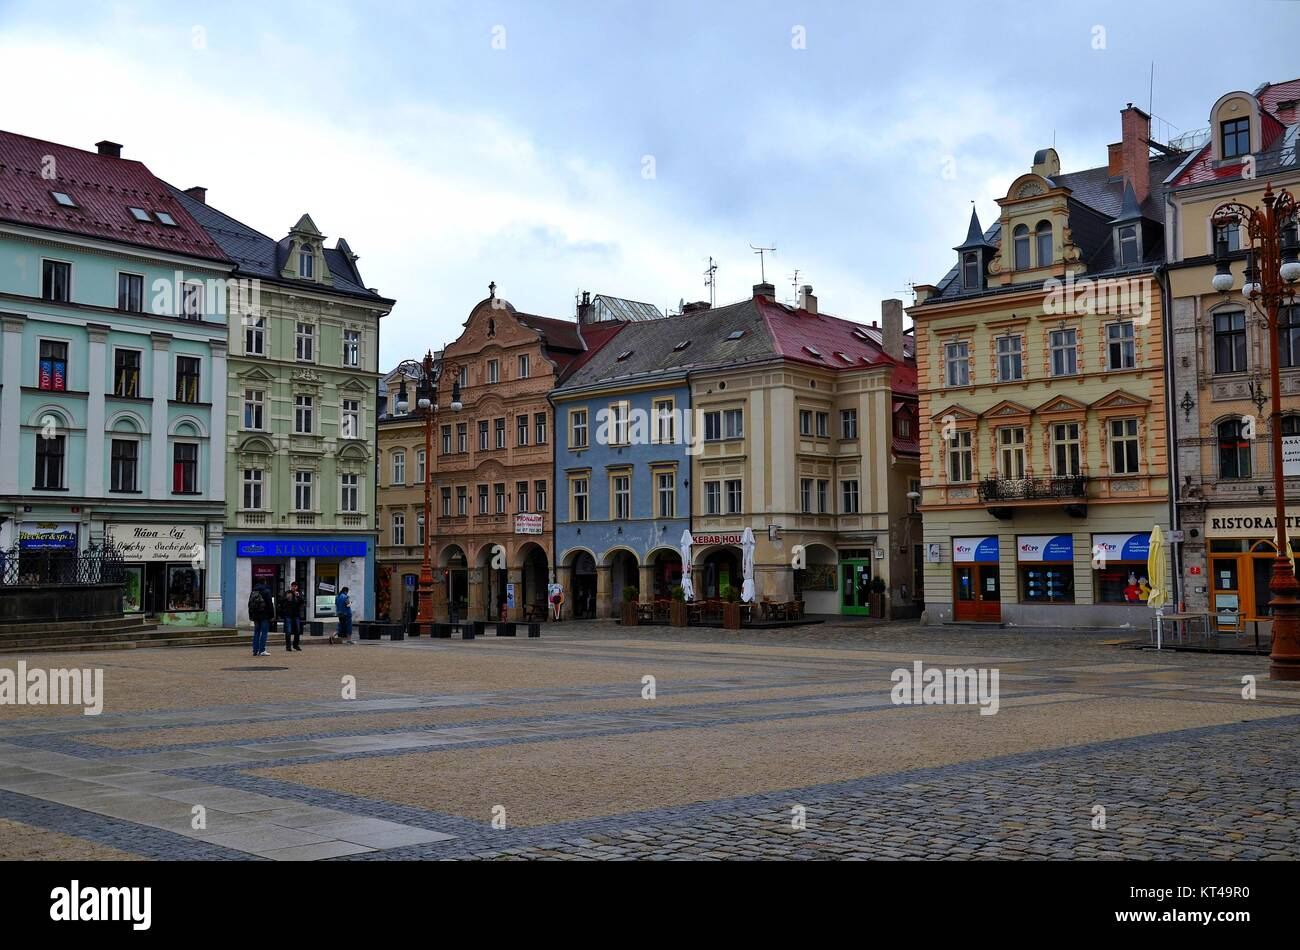 In the town of Liberec (Reichenberg) in the Czech Republic: Around the Main Square - Stock Image